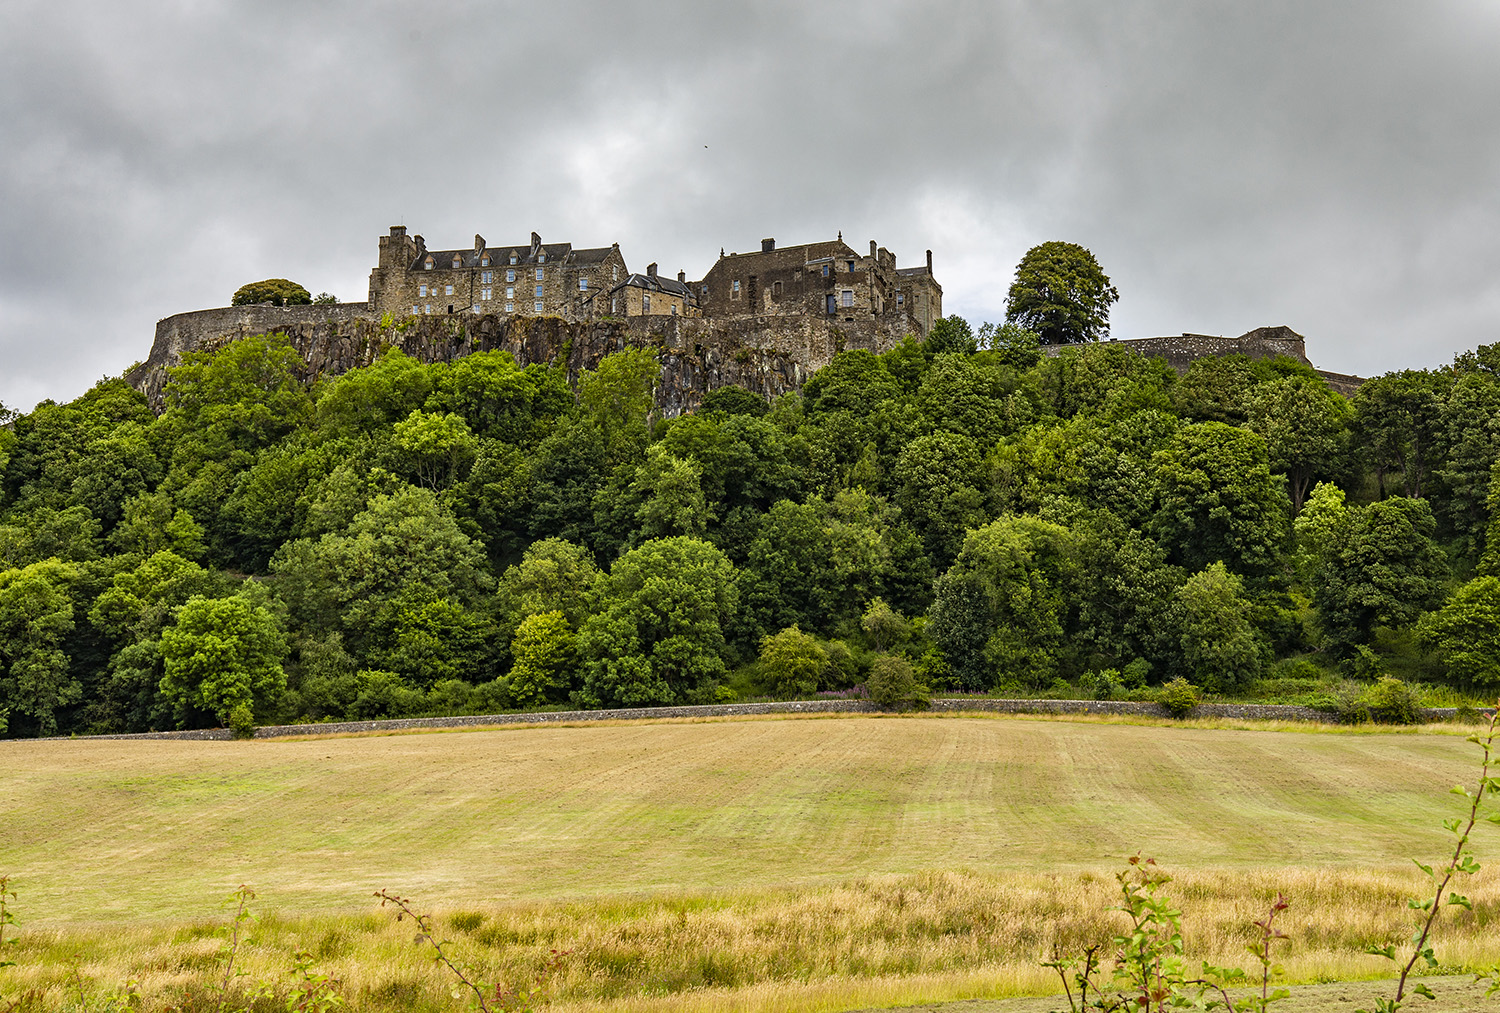 The Stirling Castle, Scotland